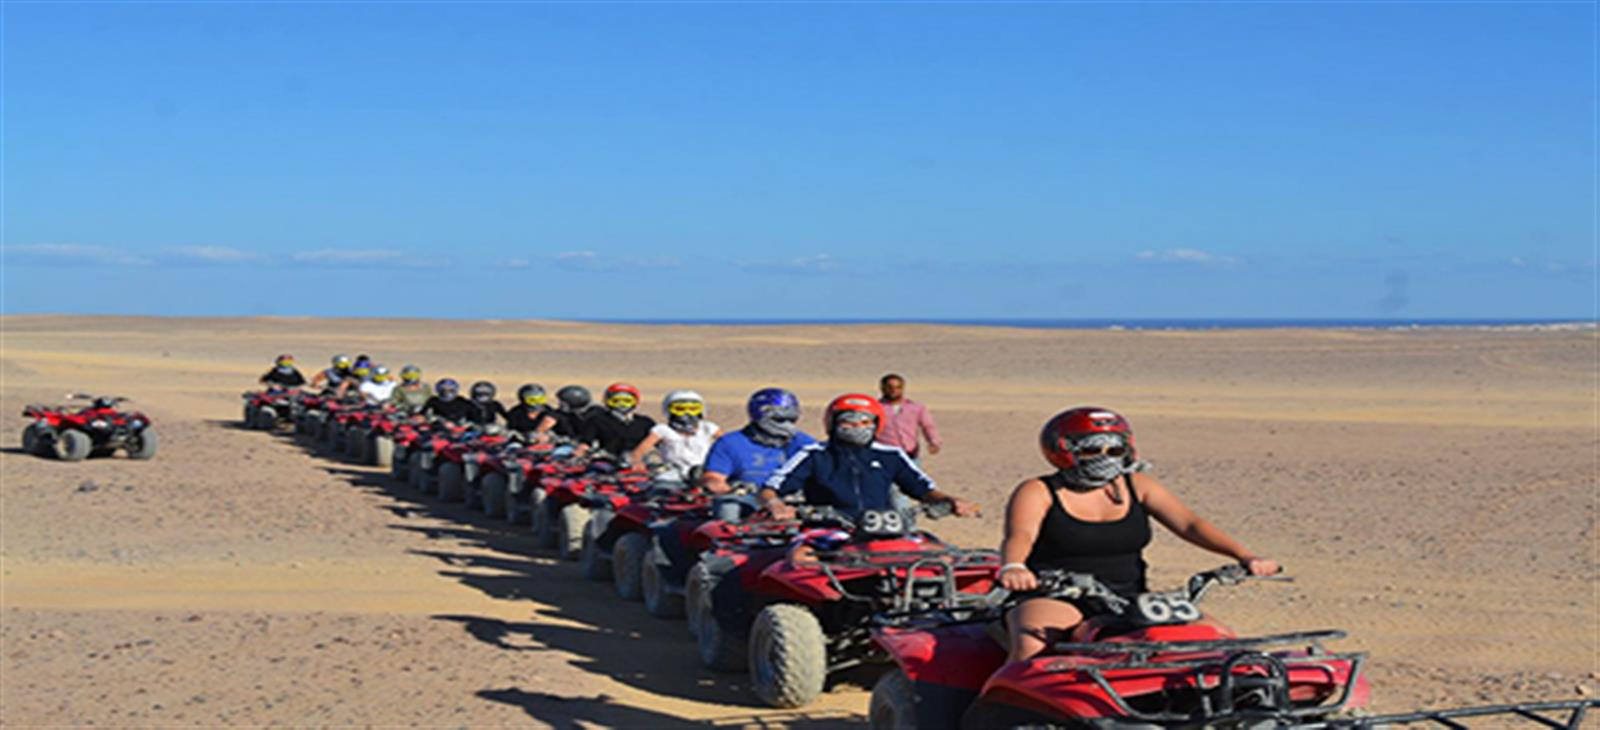 safari by bikes tour from sharm marina